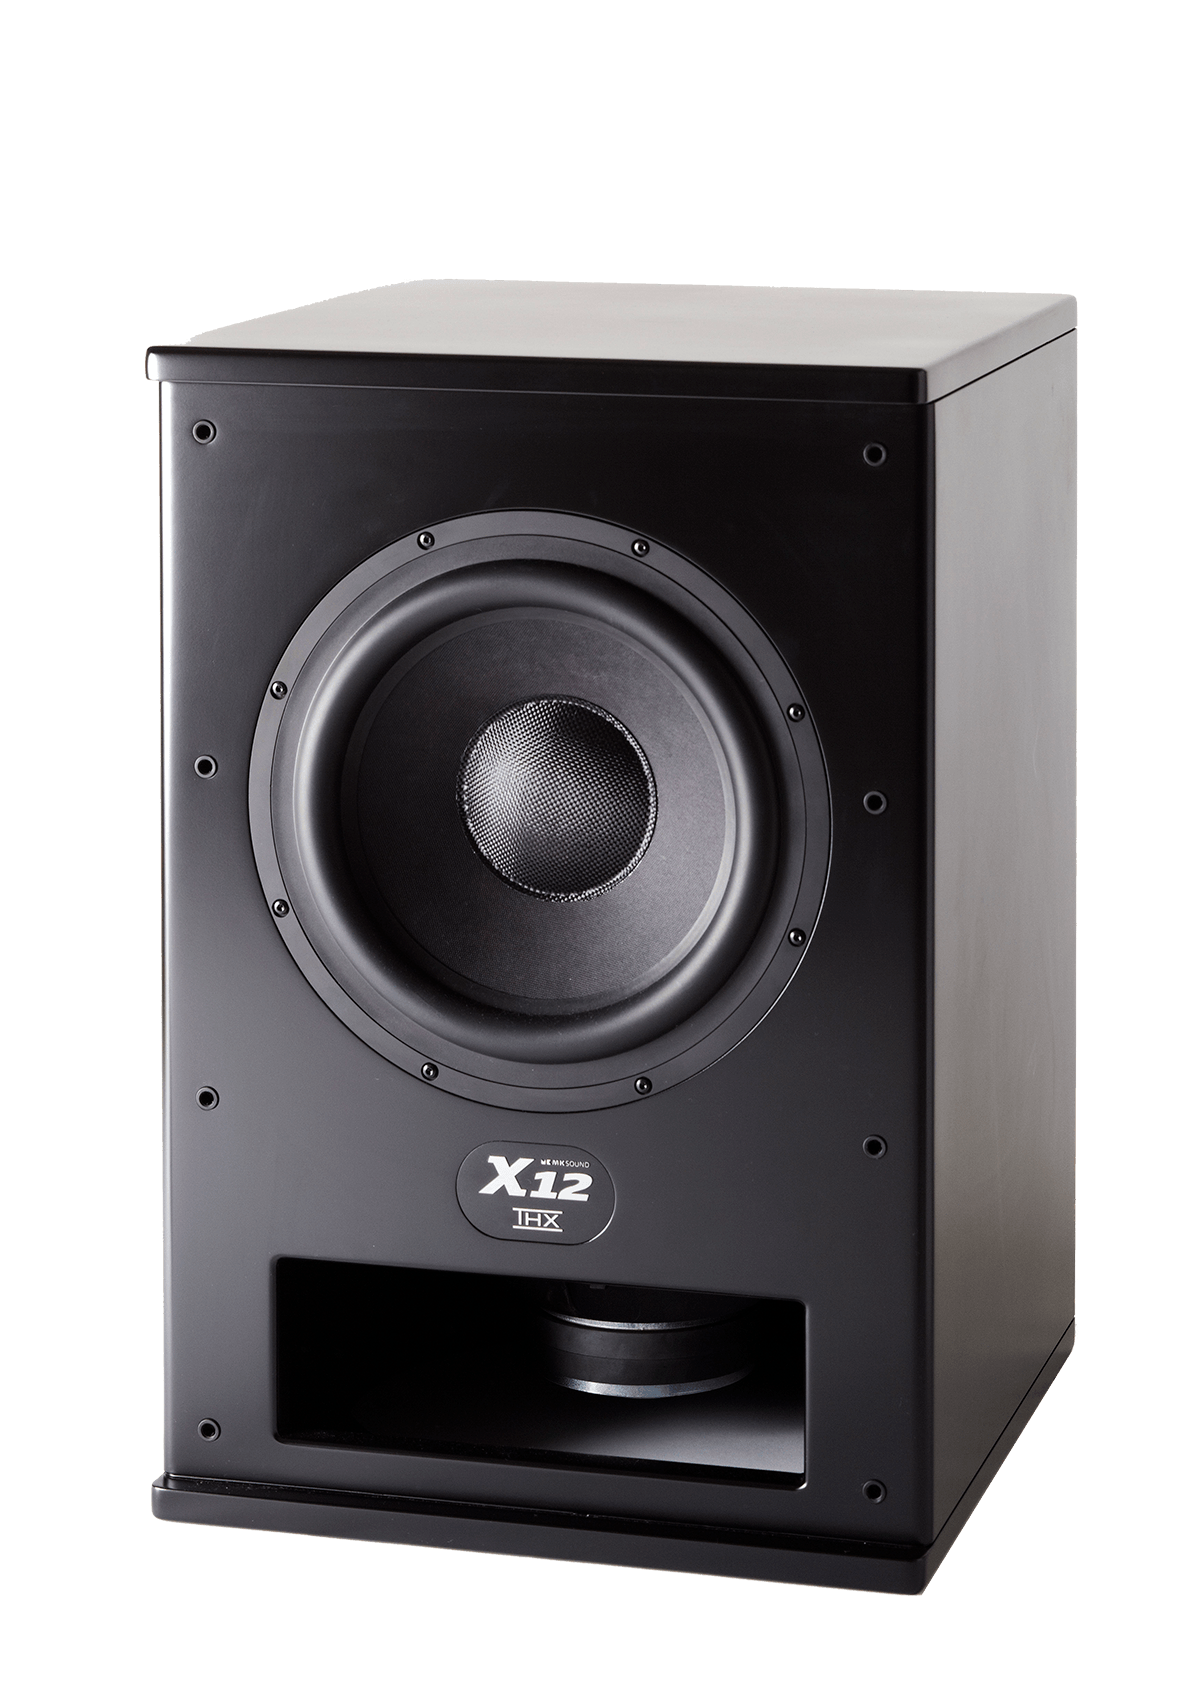 X10 Subwoofer Mk Sound Speaker Cabi Wiring Diagrams As Well Dual 4 Ohm Sub To 2 X Series Subwoofers Meet And Exceed Thx Specifications Deliver Music Movies With Natural Effortless Realism Power